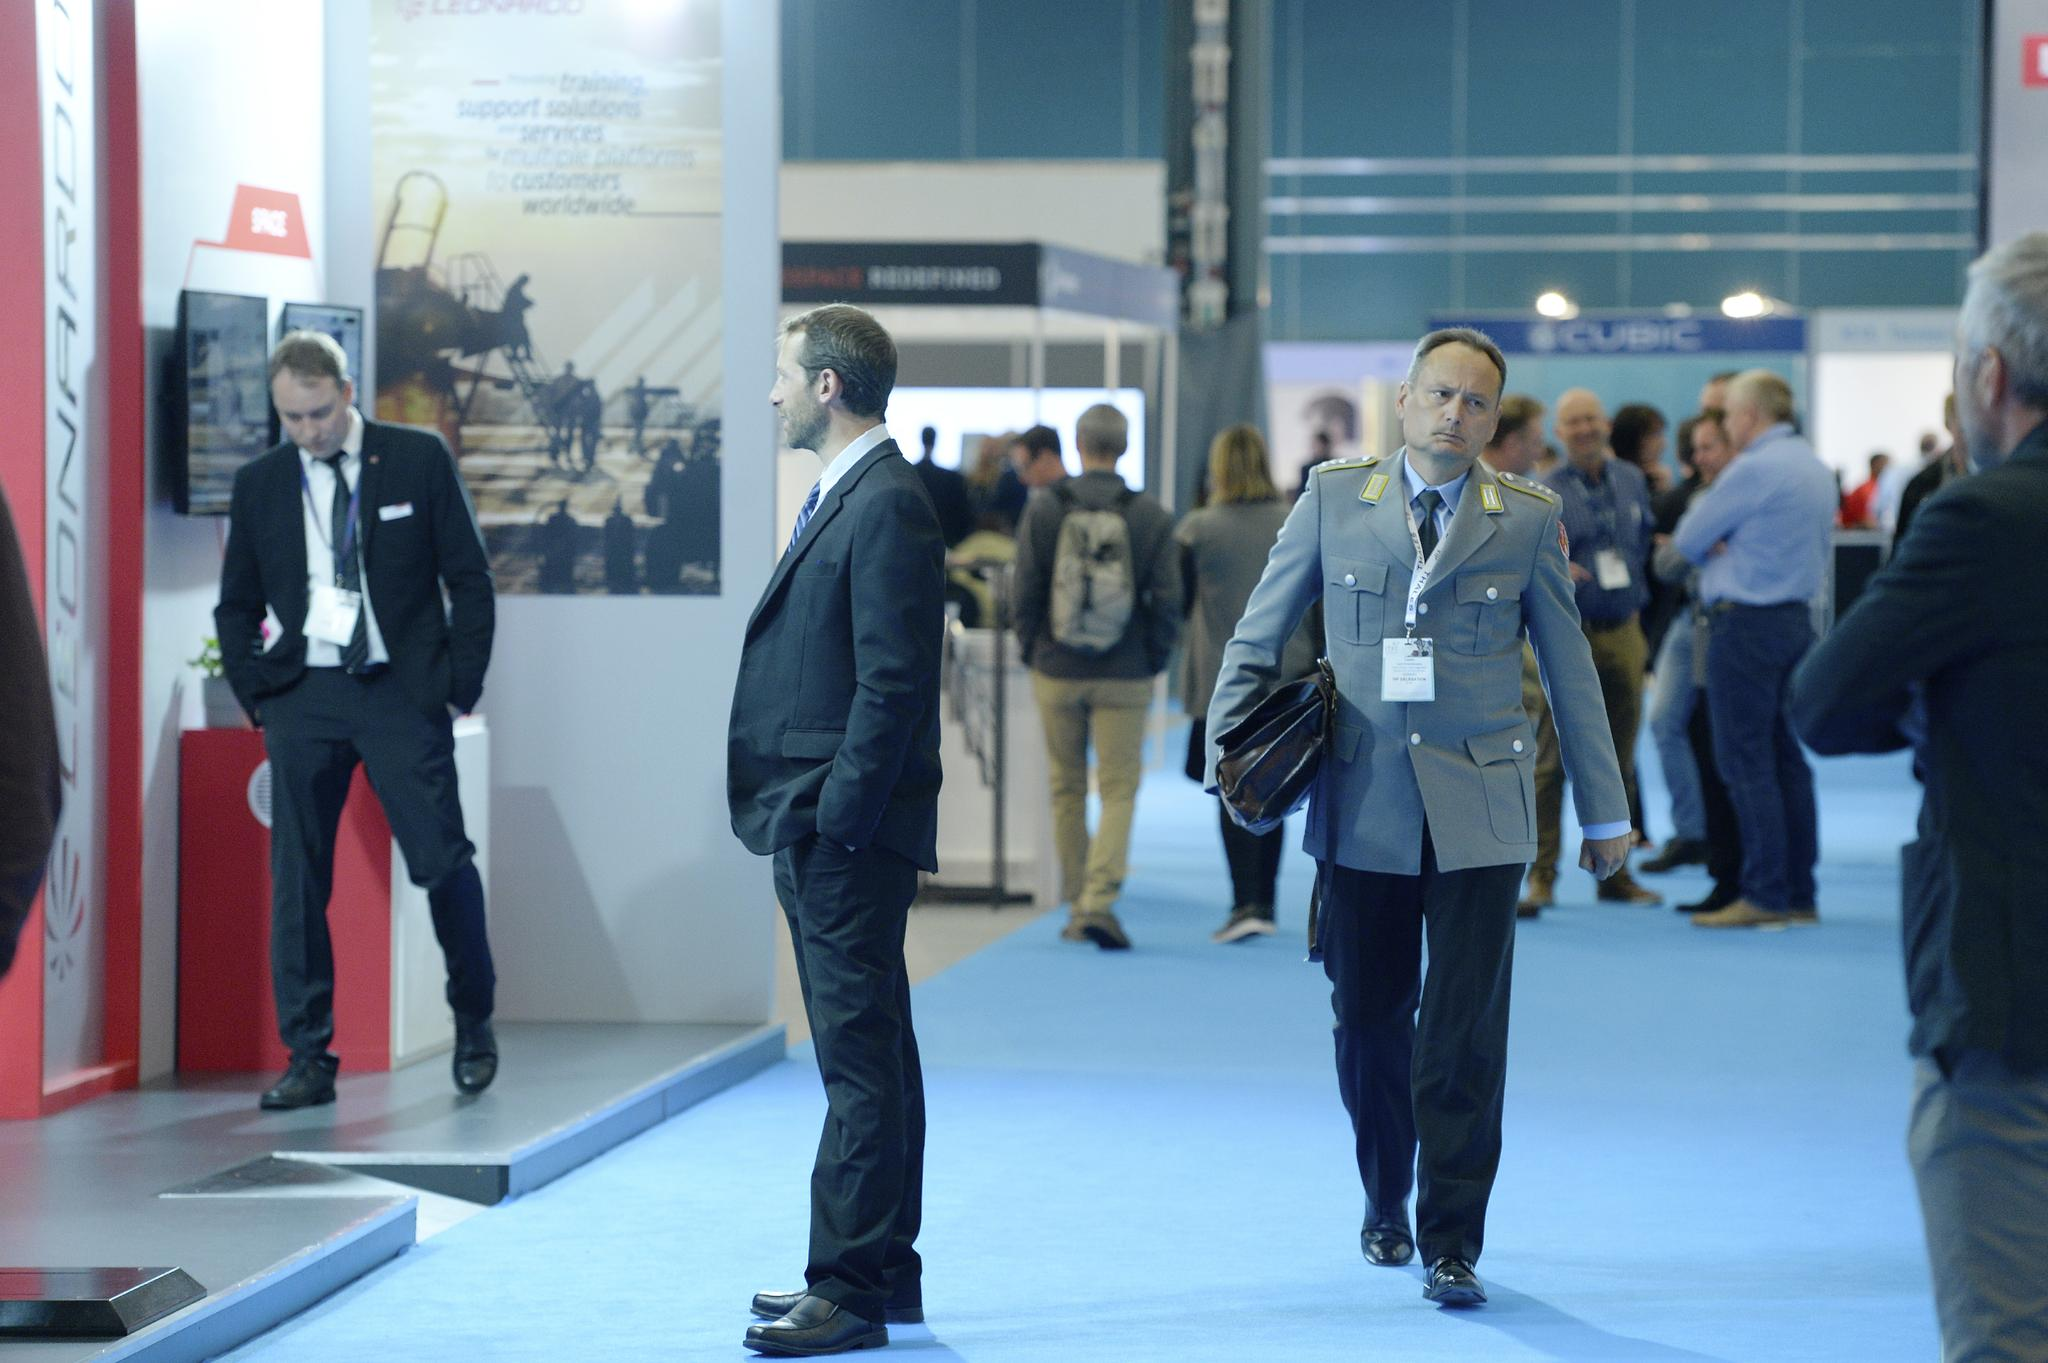 IT²EC exhibition / DisTec access >>